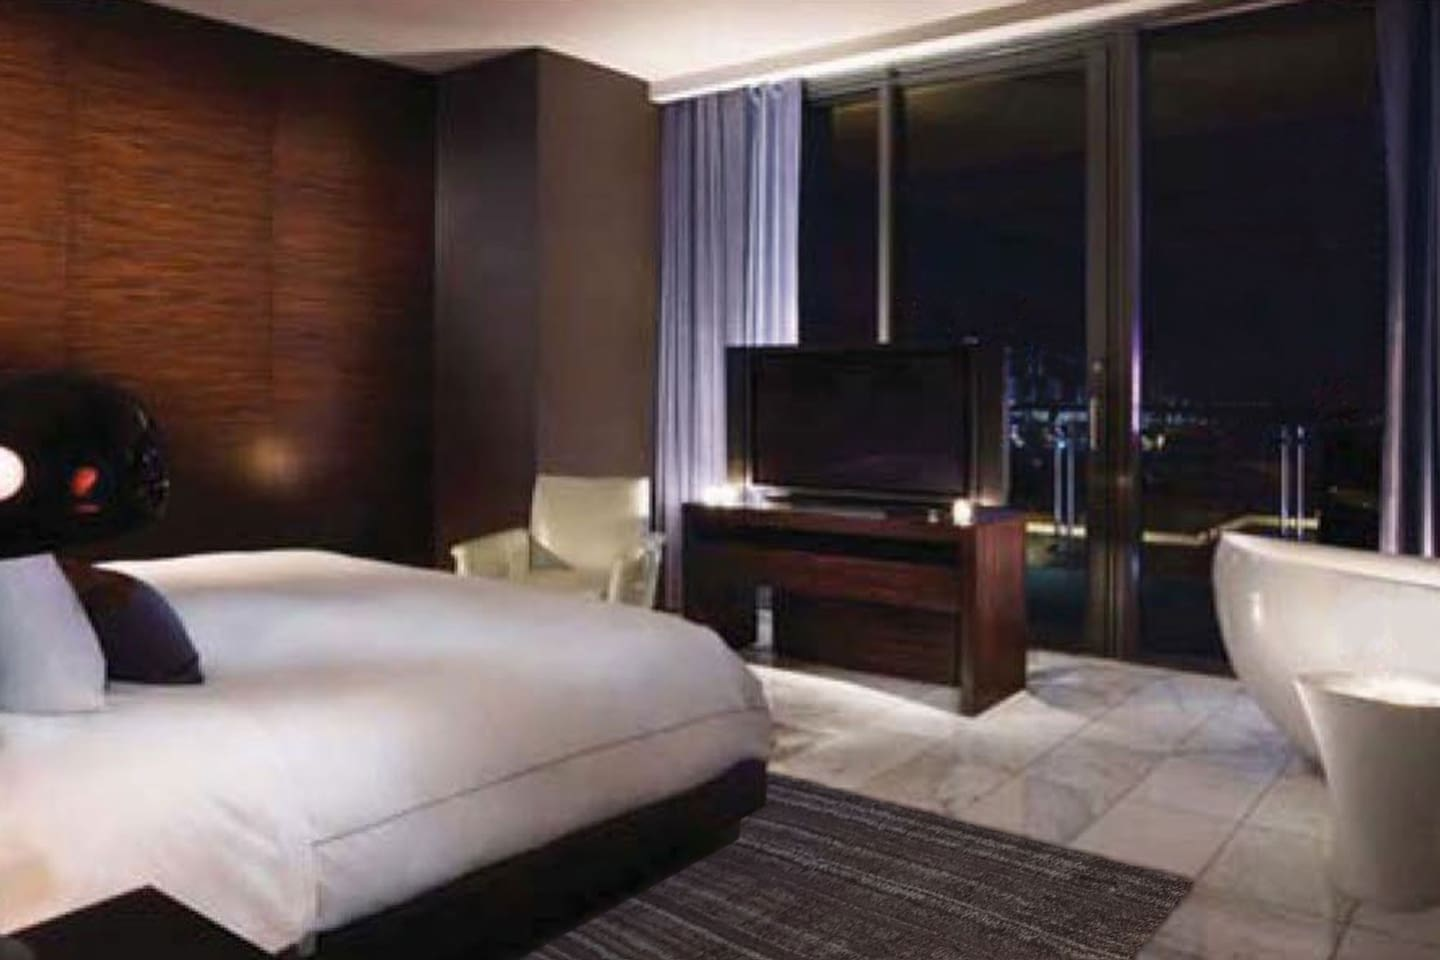 One Bedroom Suite At Palms Place One Bedroom Luxury Condo In Vegas Condominiums For Rent In Las